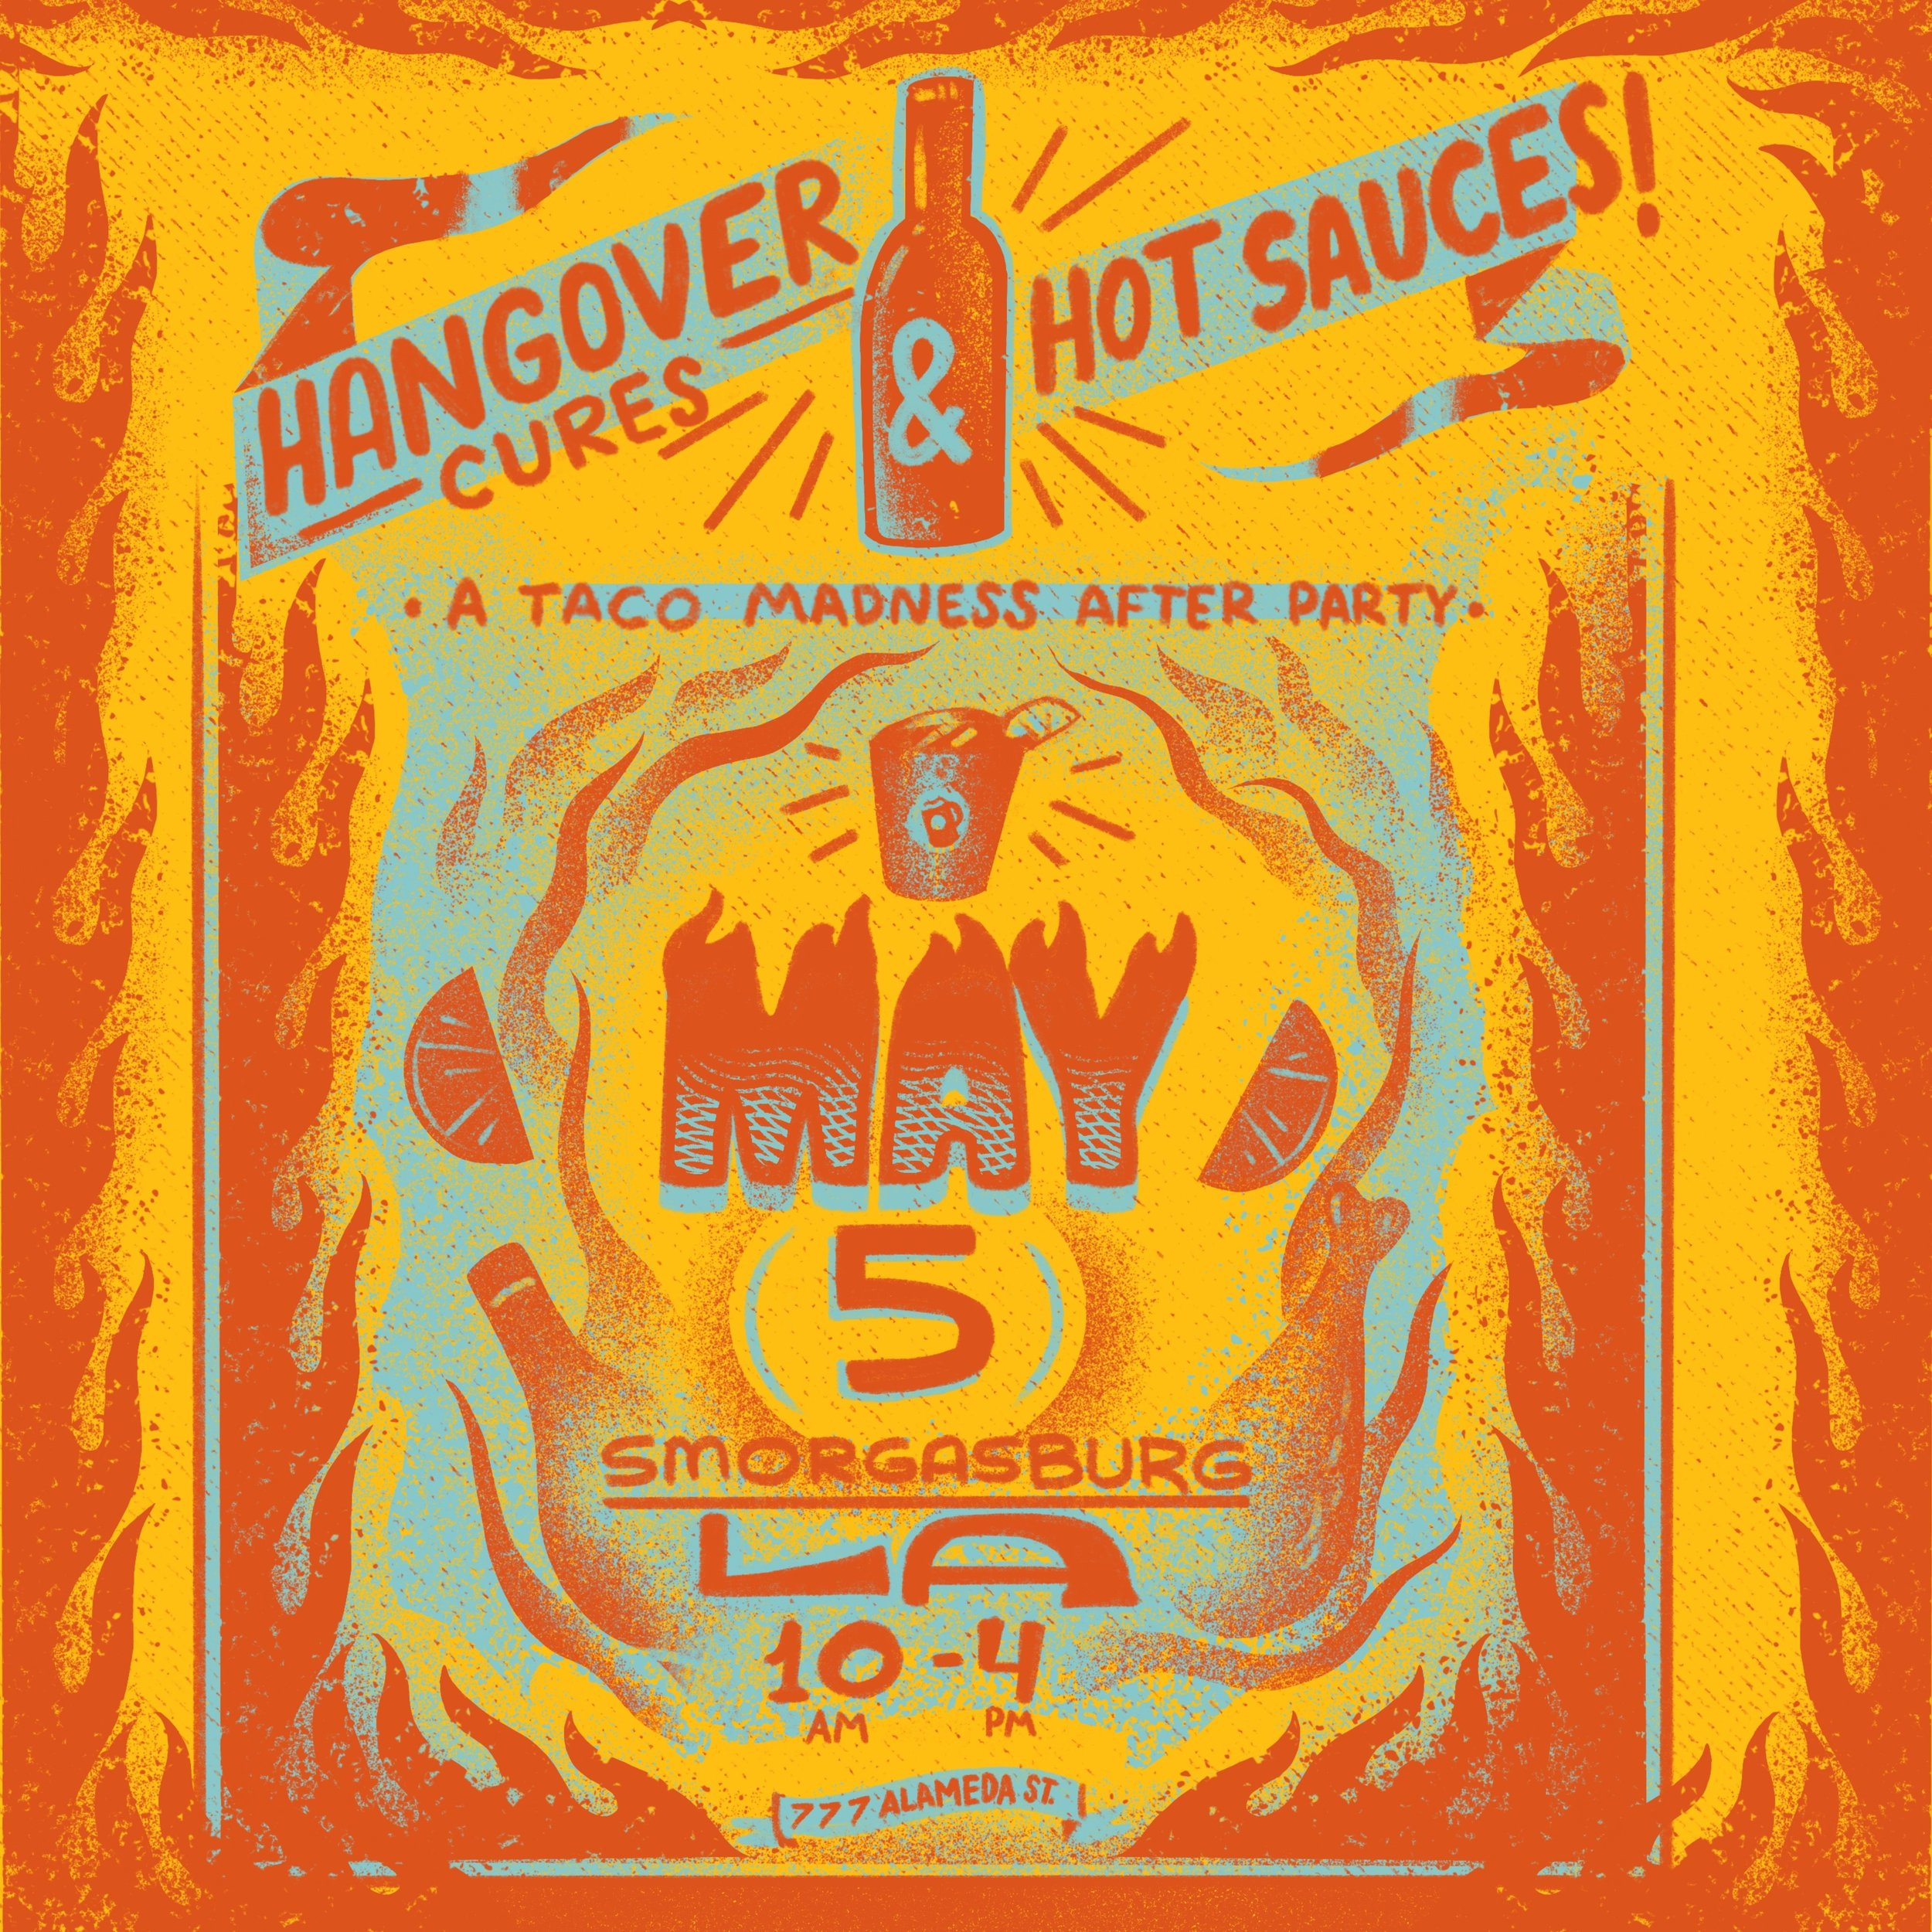 hot sauces flyer.jpg